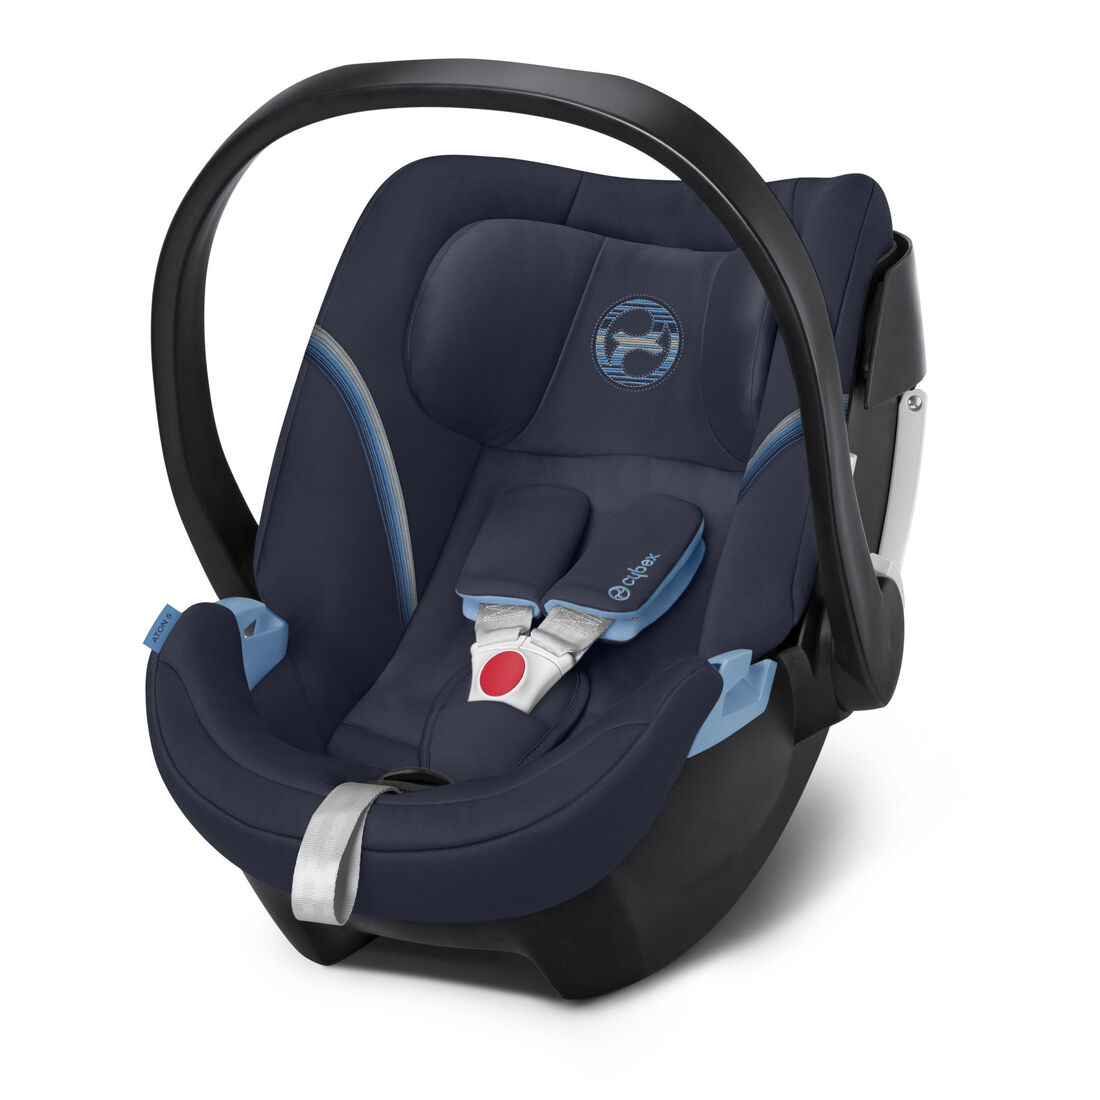 CYBEX Aton 5 - Navy Blue in Navy Blue large image number 1